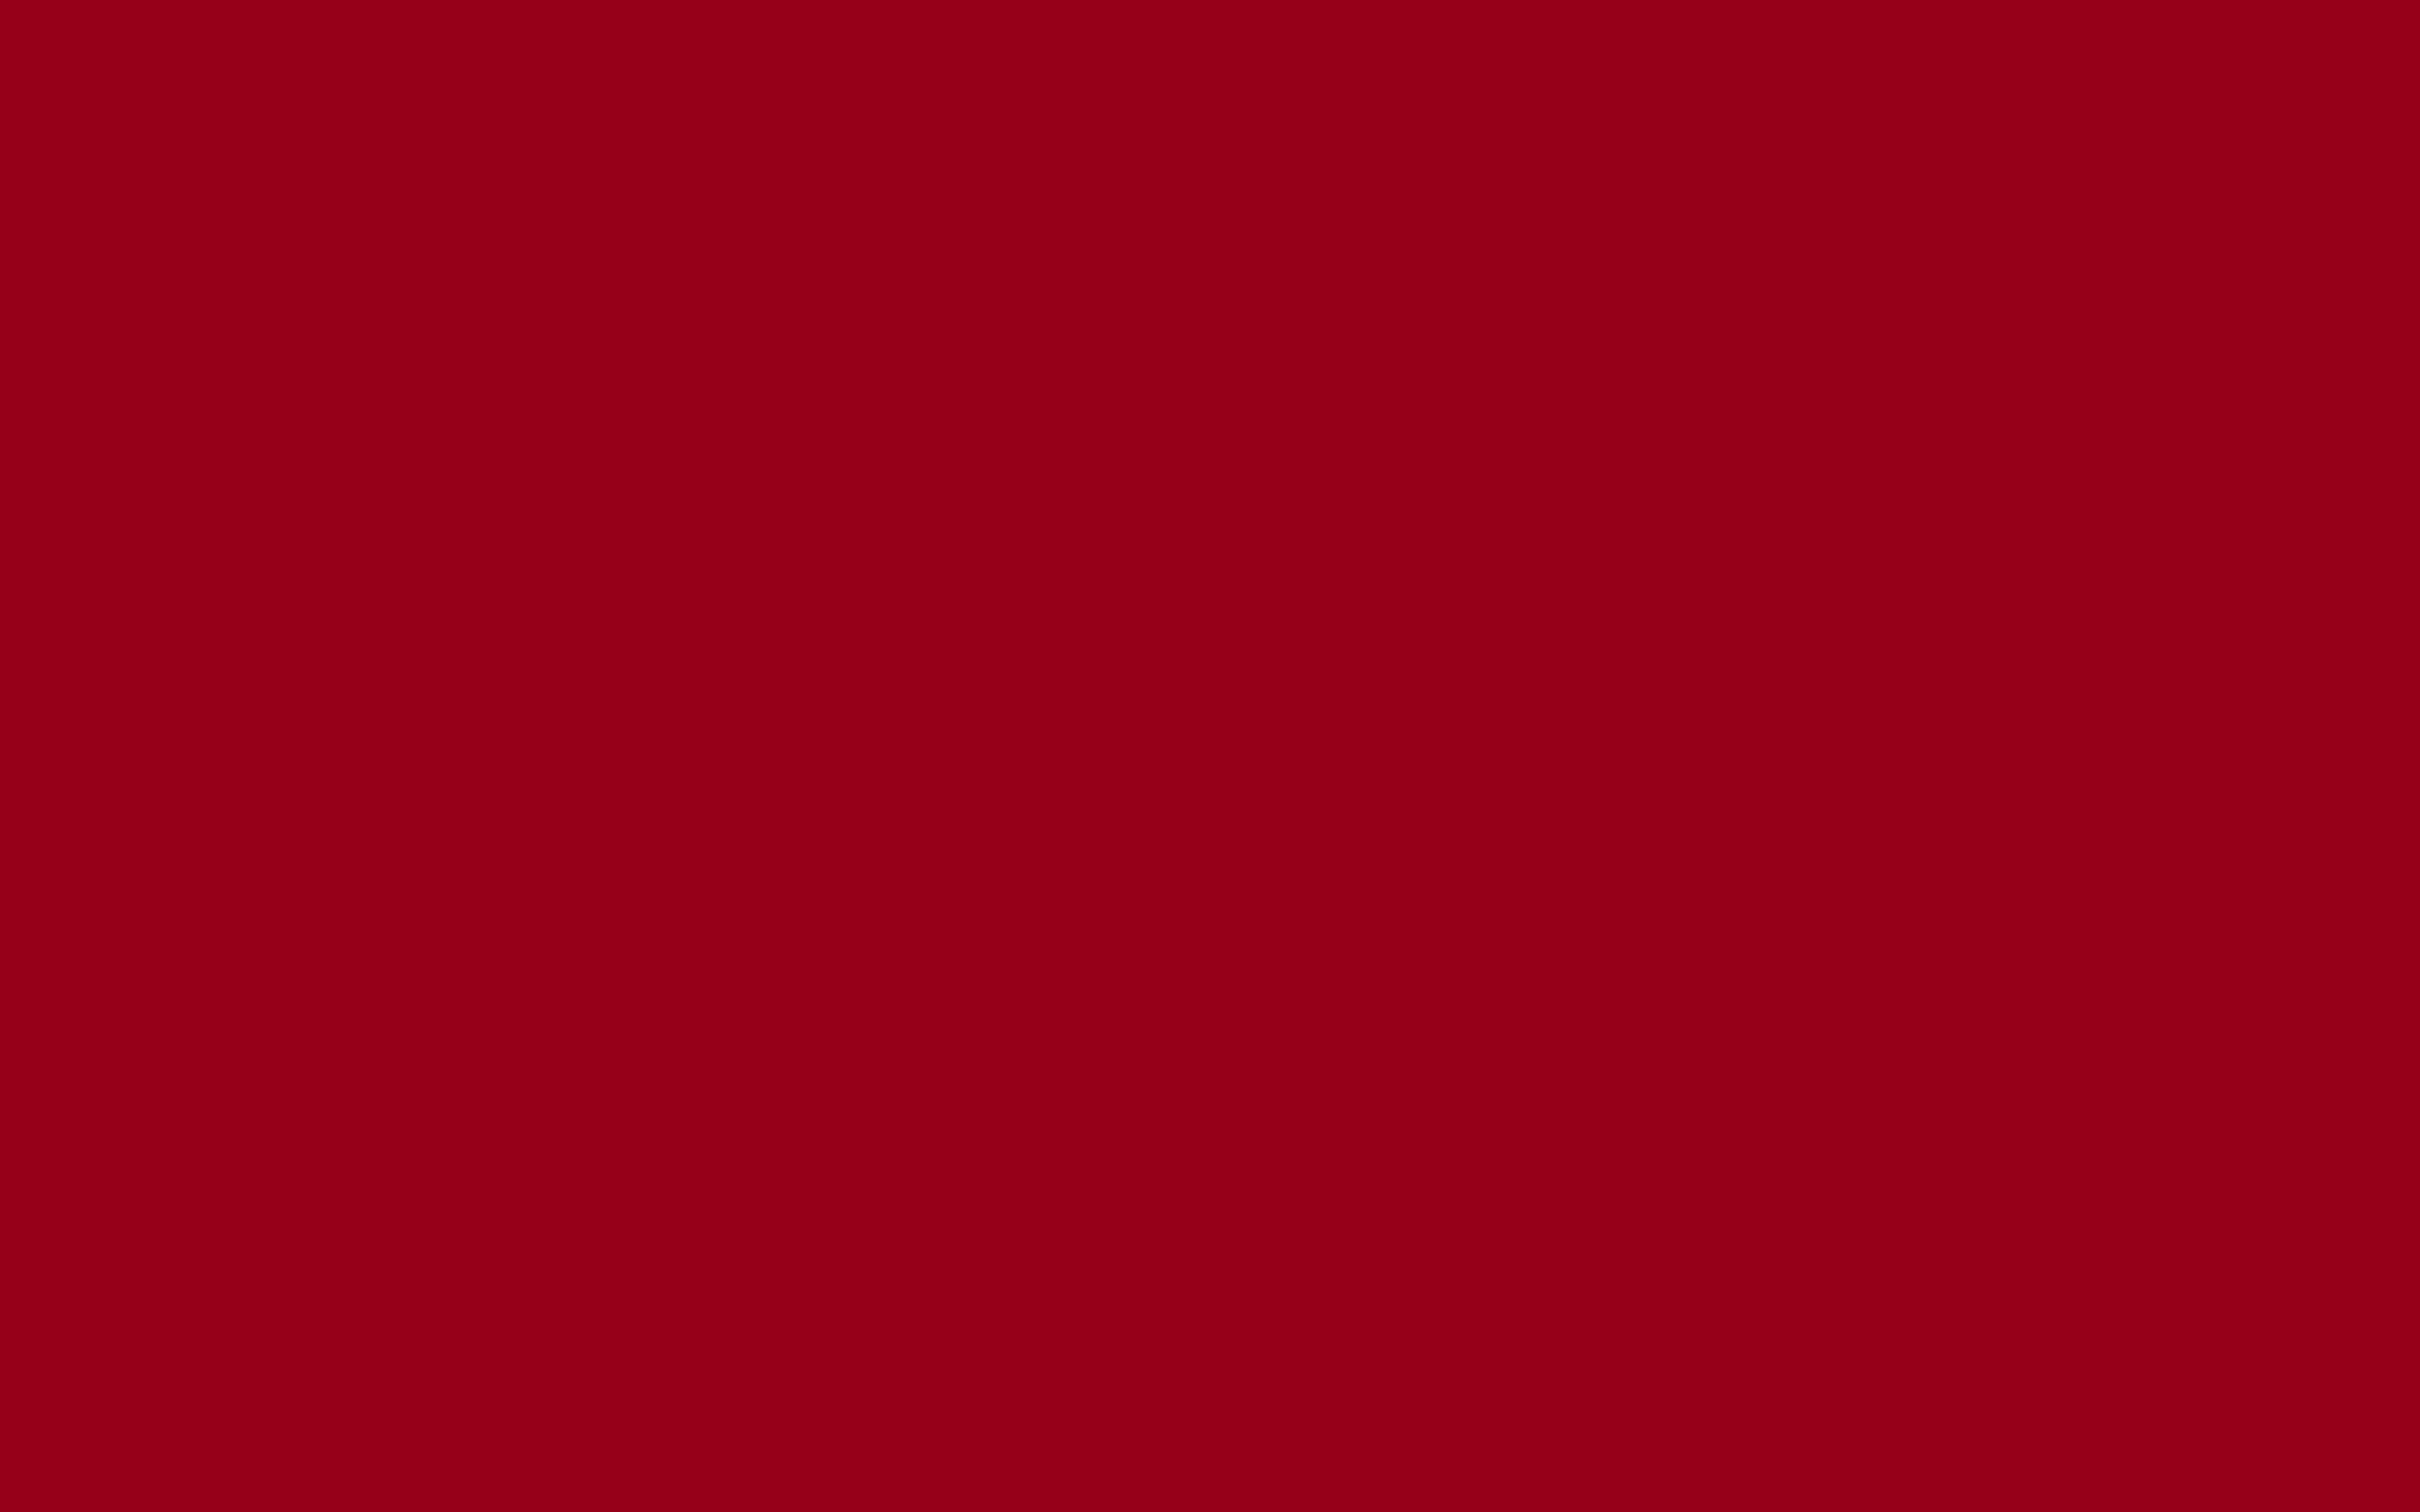 2560x1600 Carmine Solid Color Background